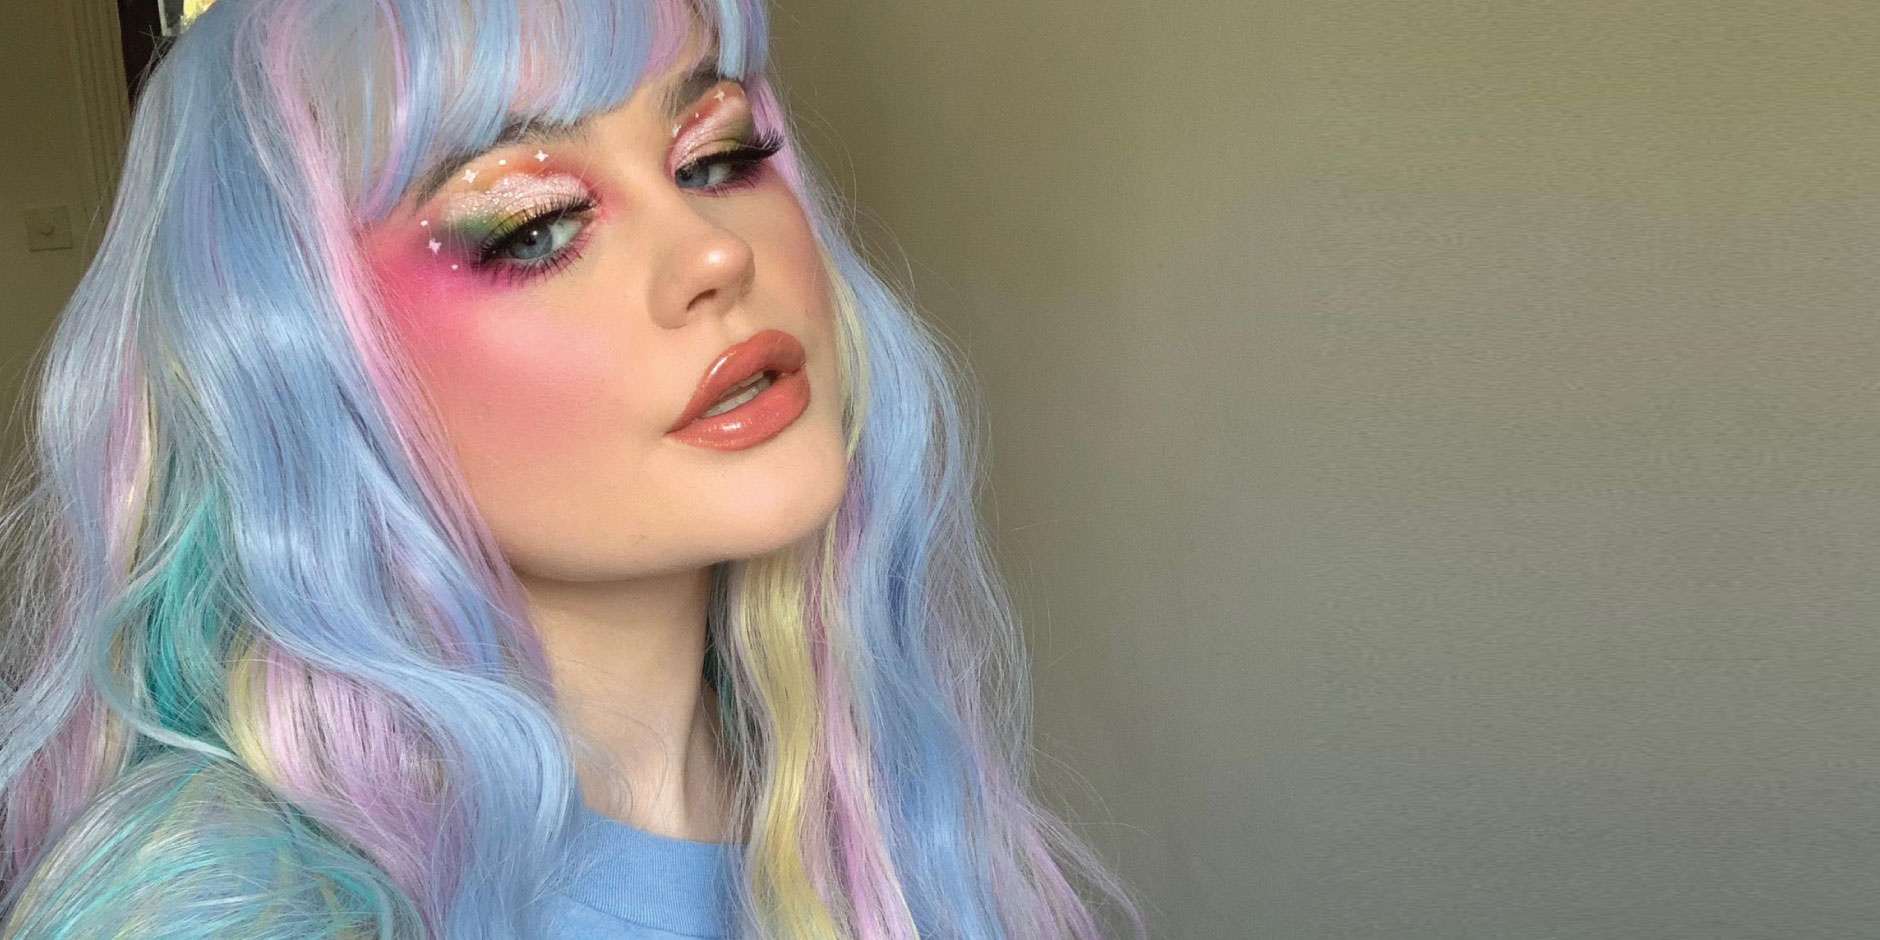 A woman with rainbow pastel hair shows off elaborate unicorn face makeup